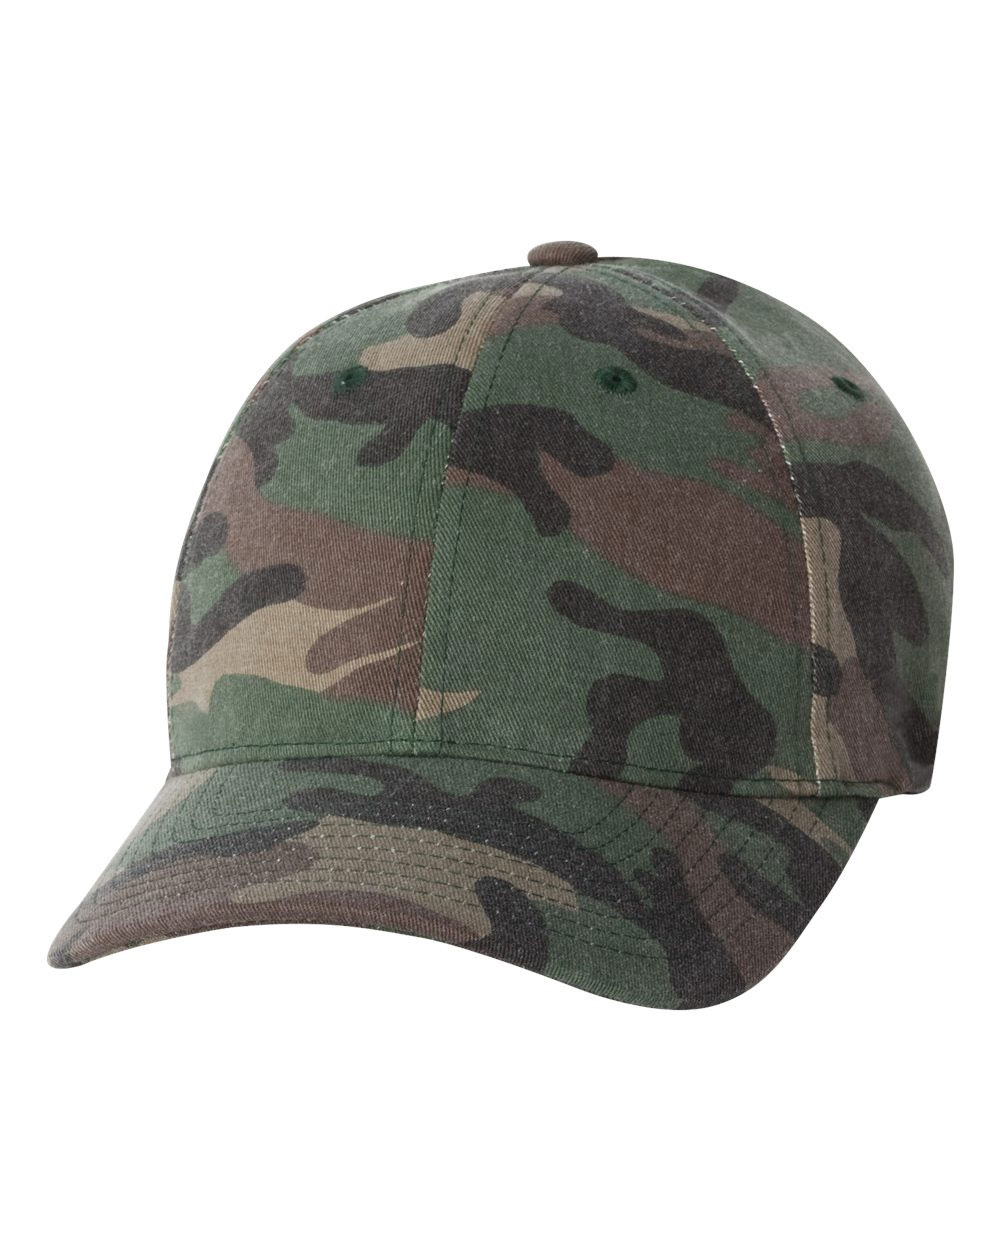 Flexfit Adult Cotton Camouflage Cap